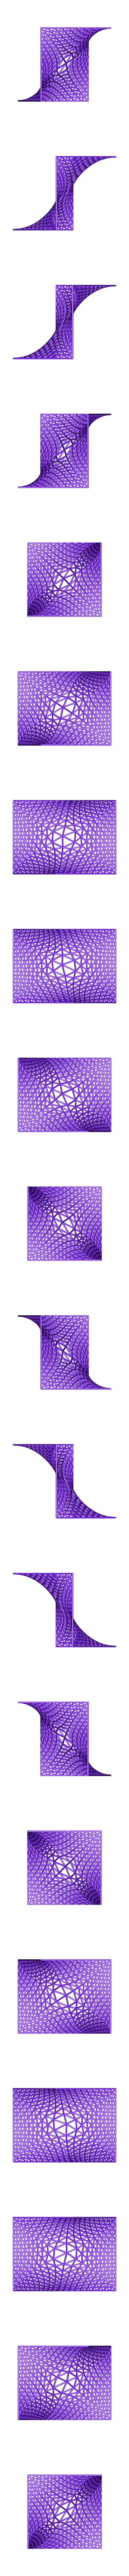 surface1.stl Download free STL file Cube Plateau Problem • Model to 3D print, zeycus